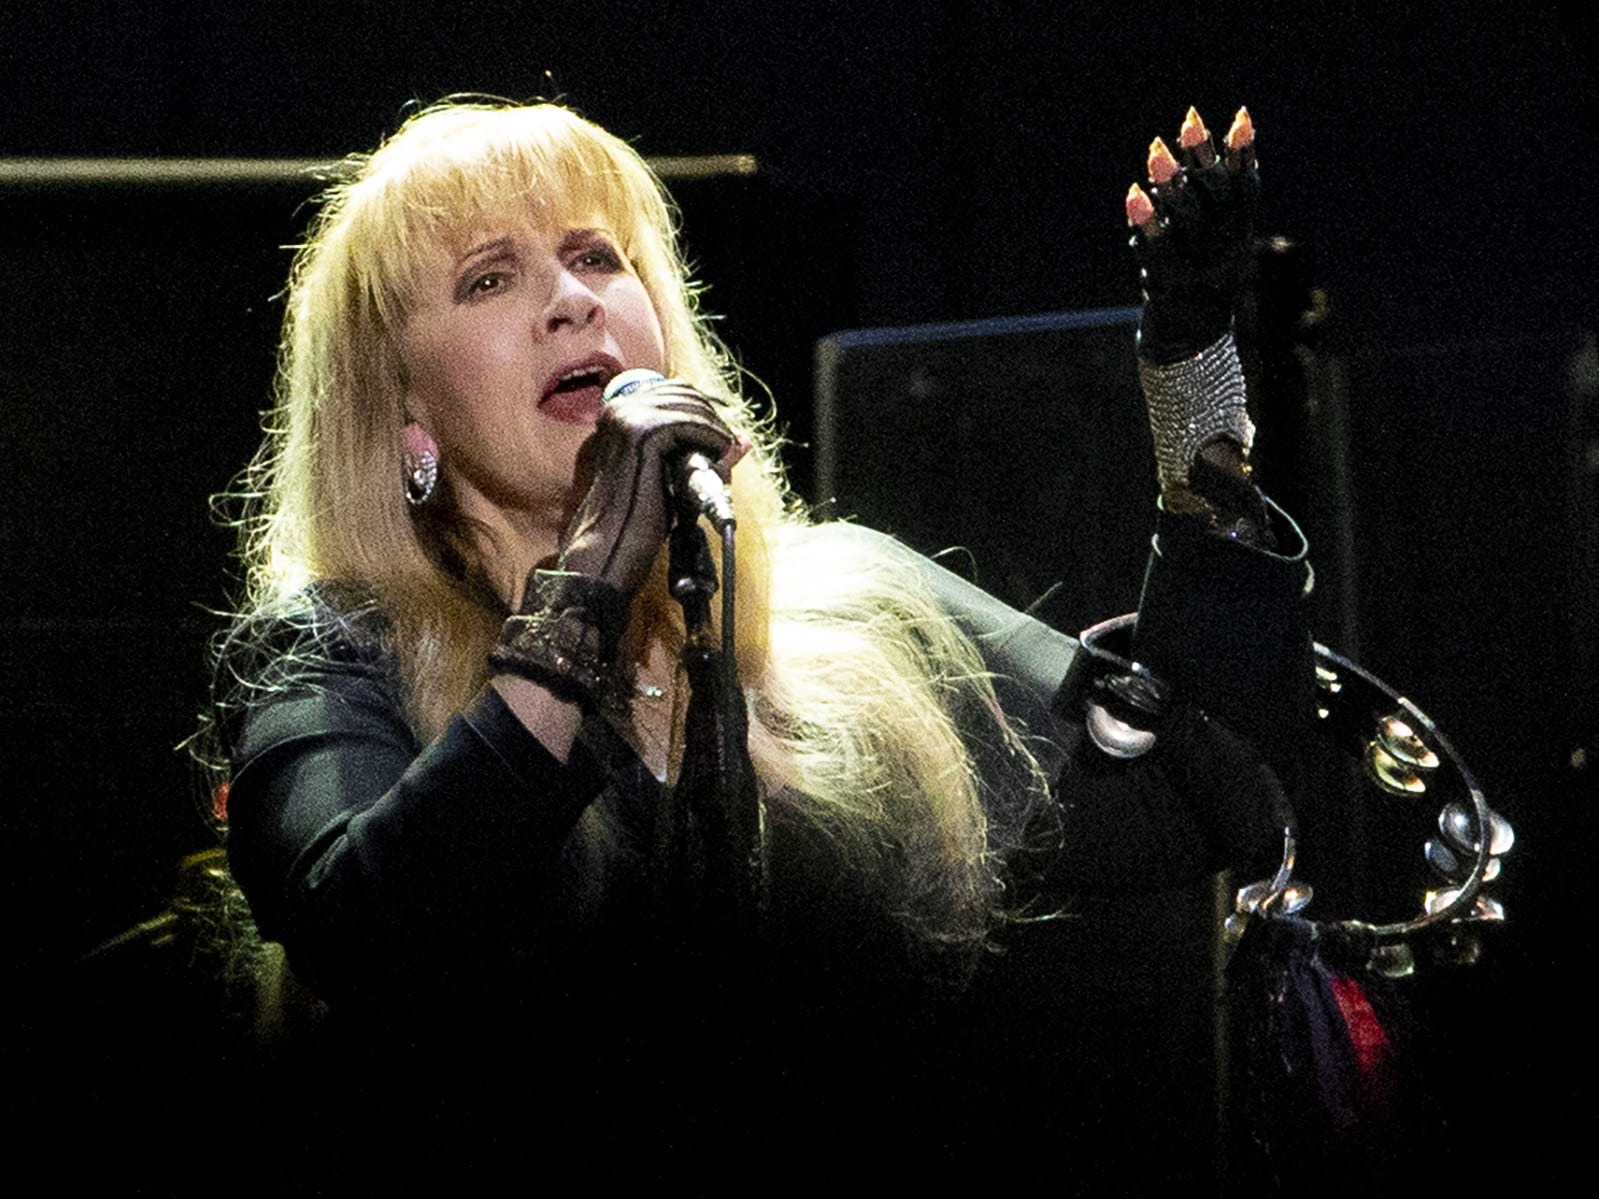 Stevie Nicks of Fleetwood Mac performs at Talking Stick Resort Arena in Phoenix on November 28, 2018.